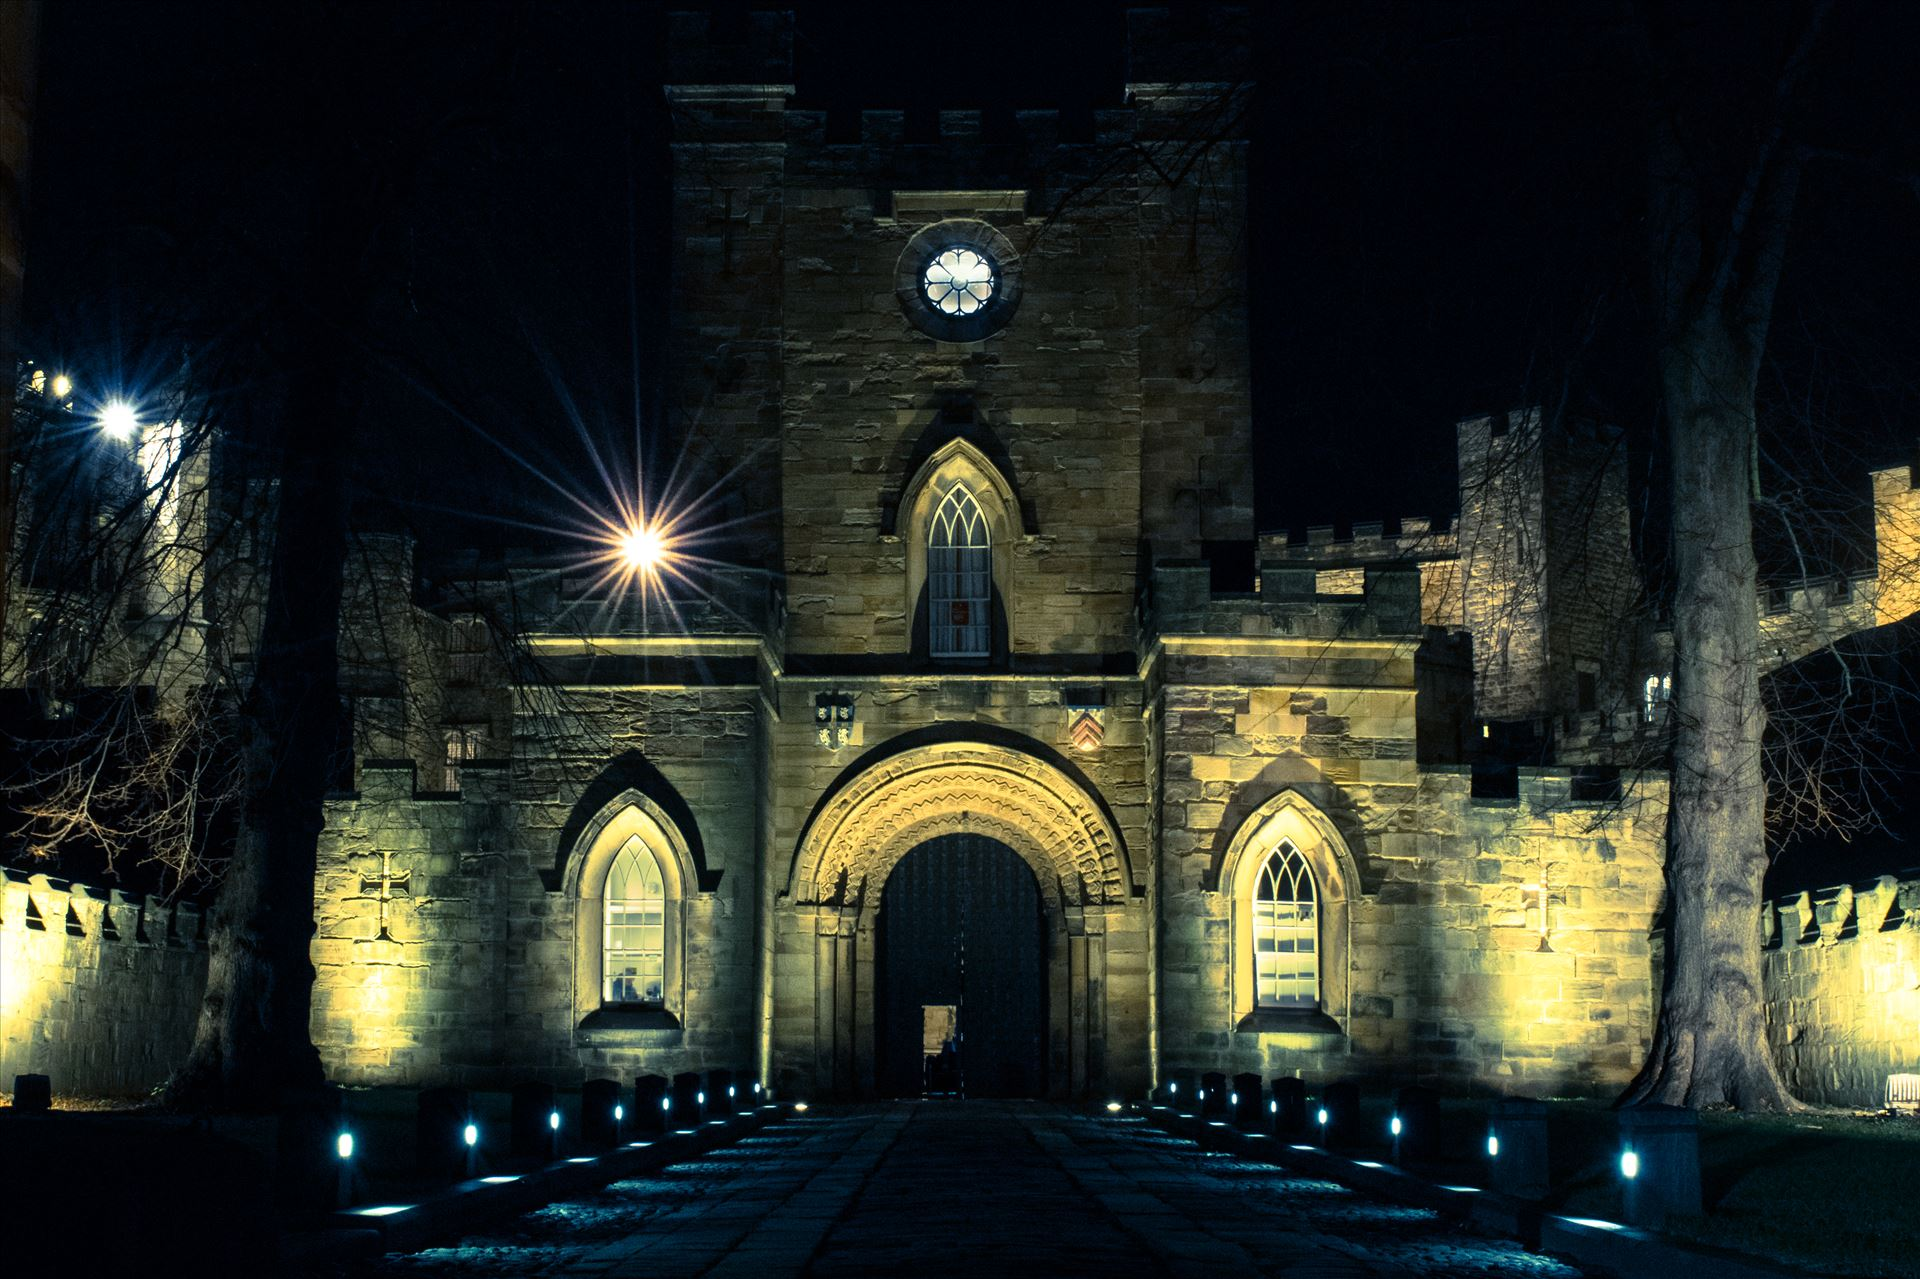 Durham City at Night - Taken on a cold night shoot in Durham City by AJ Stoves Photography